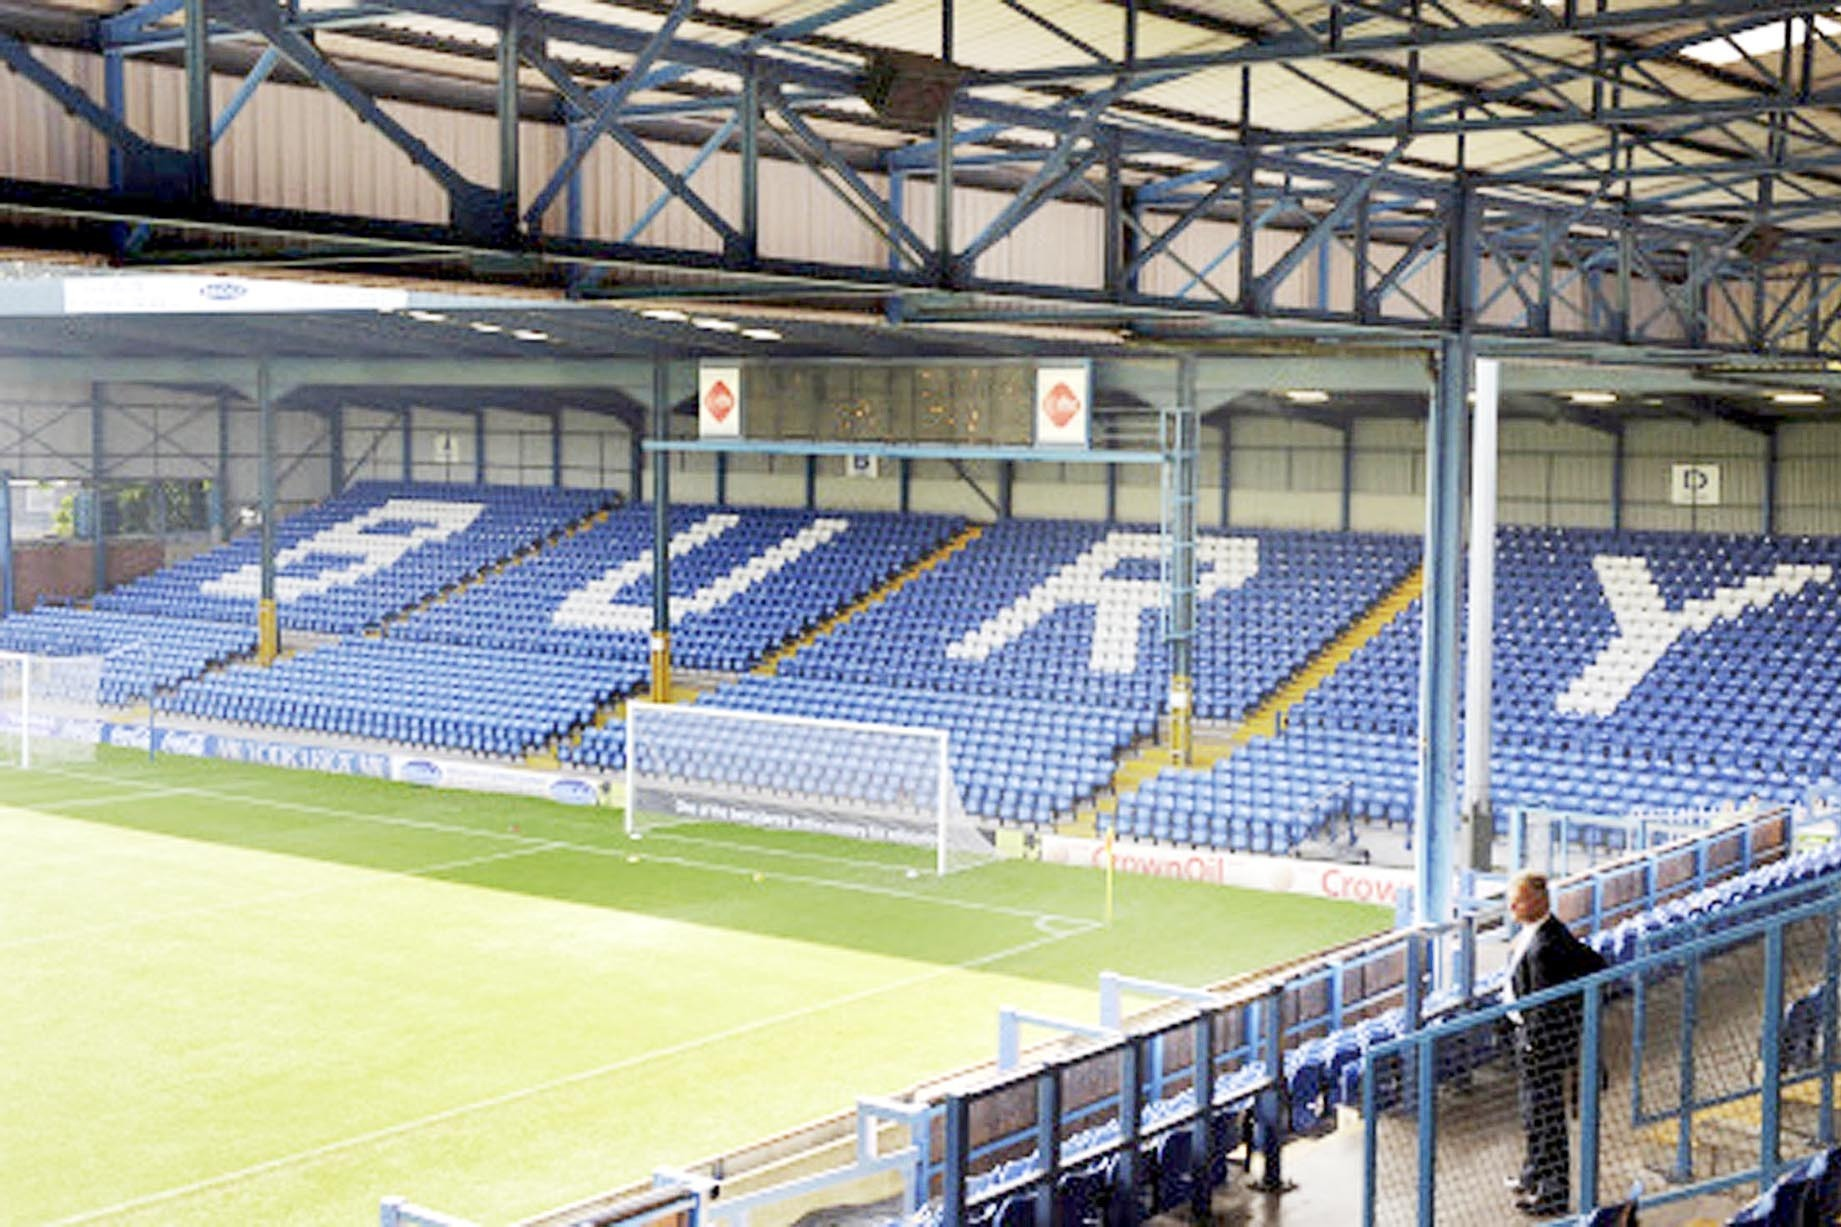 Bury FC pays debt to survive winding up bid by taxman — to be hit with another winding-up order moments later